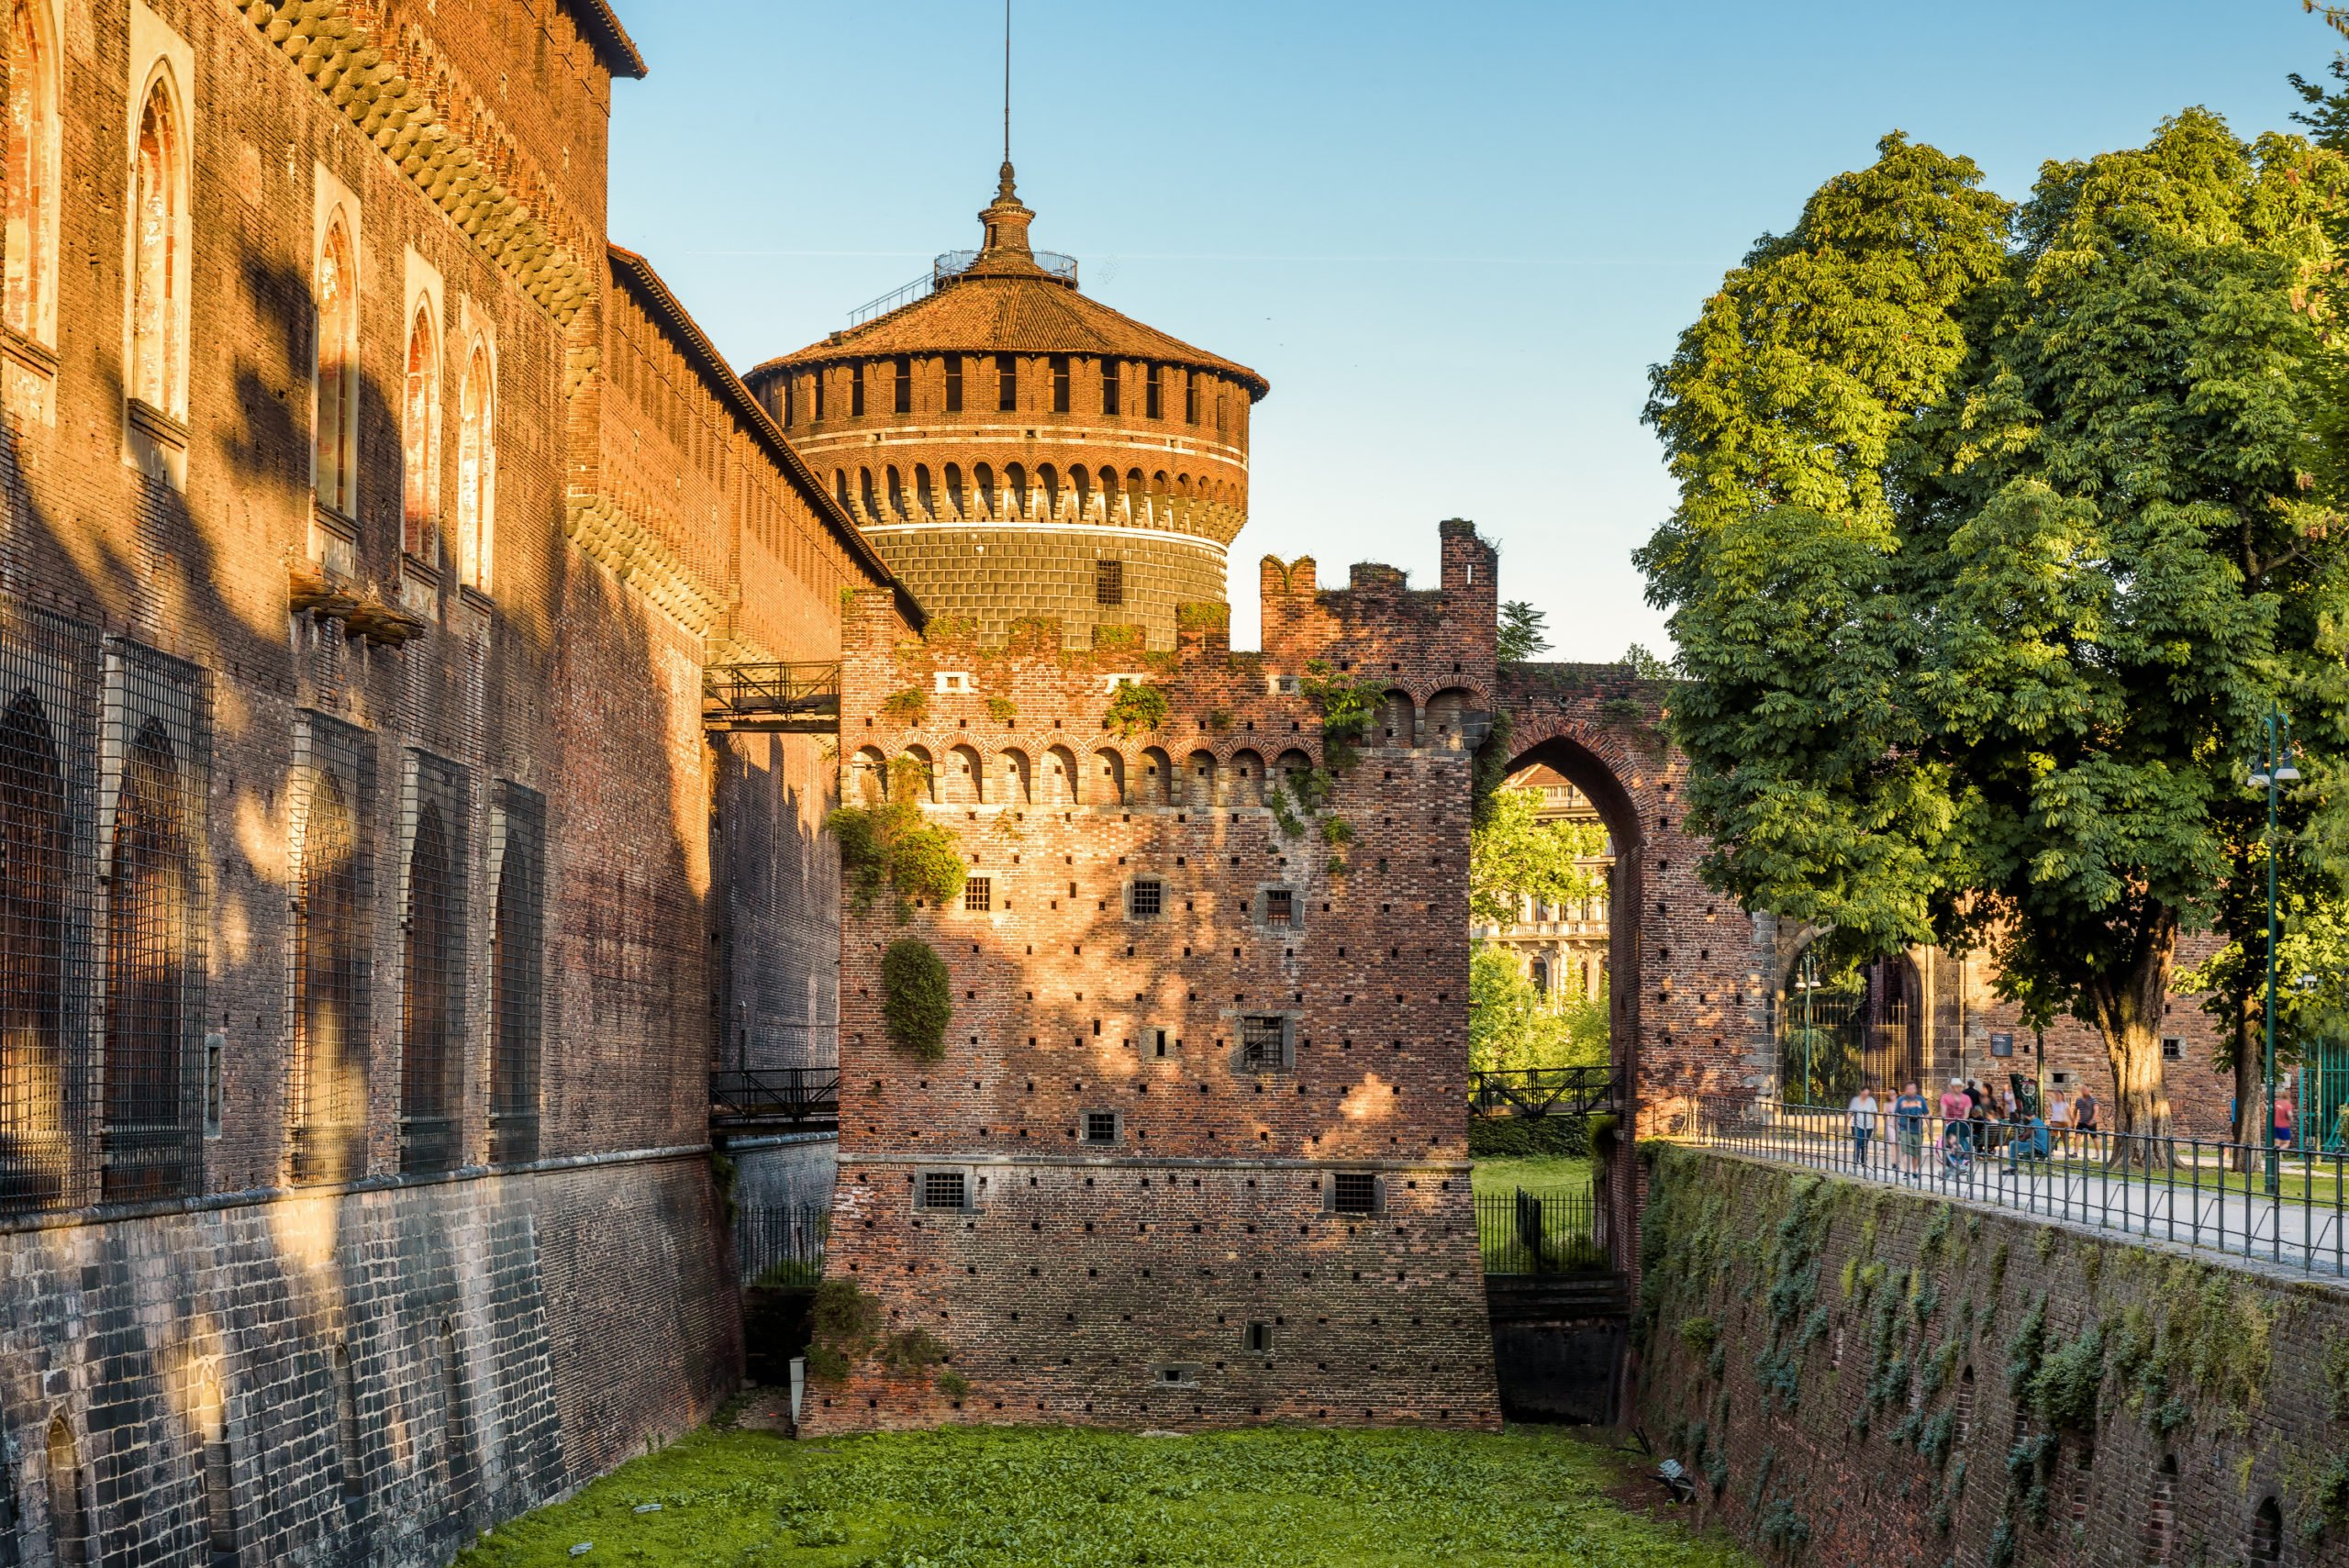 Visit One Of Milan's Famous Landmarks On The Milan Dome And Sforza Castle Half Day Tour